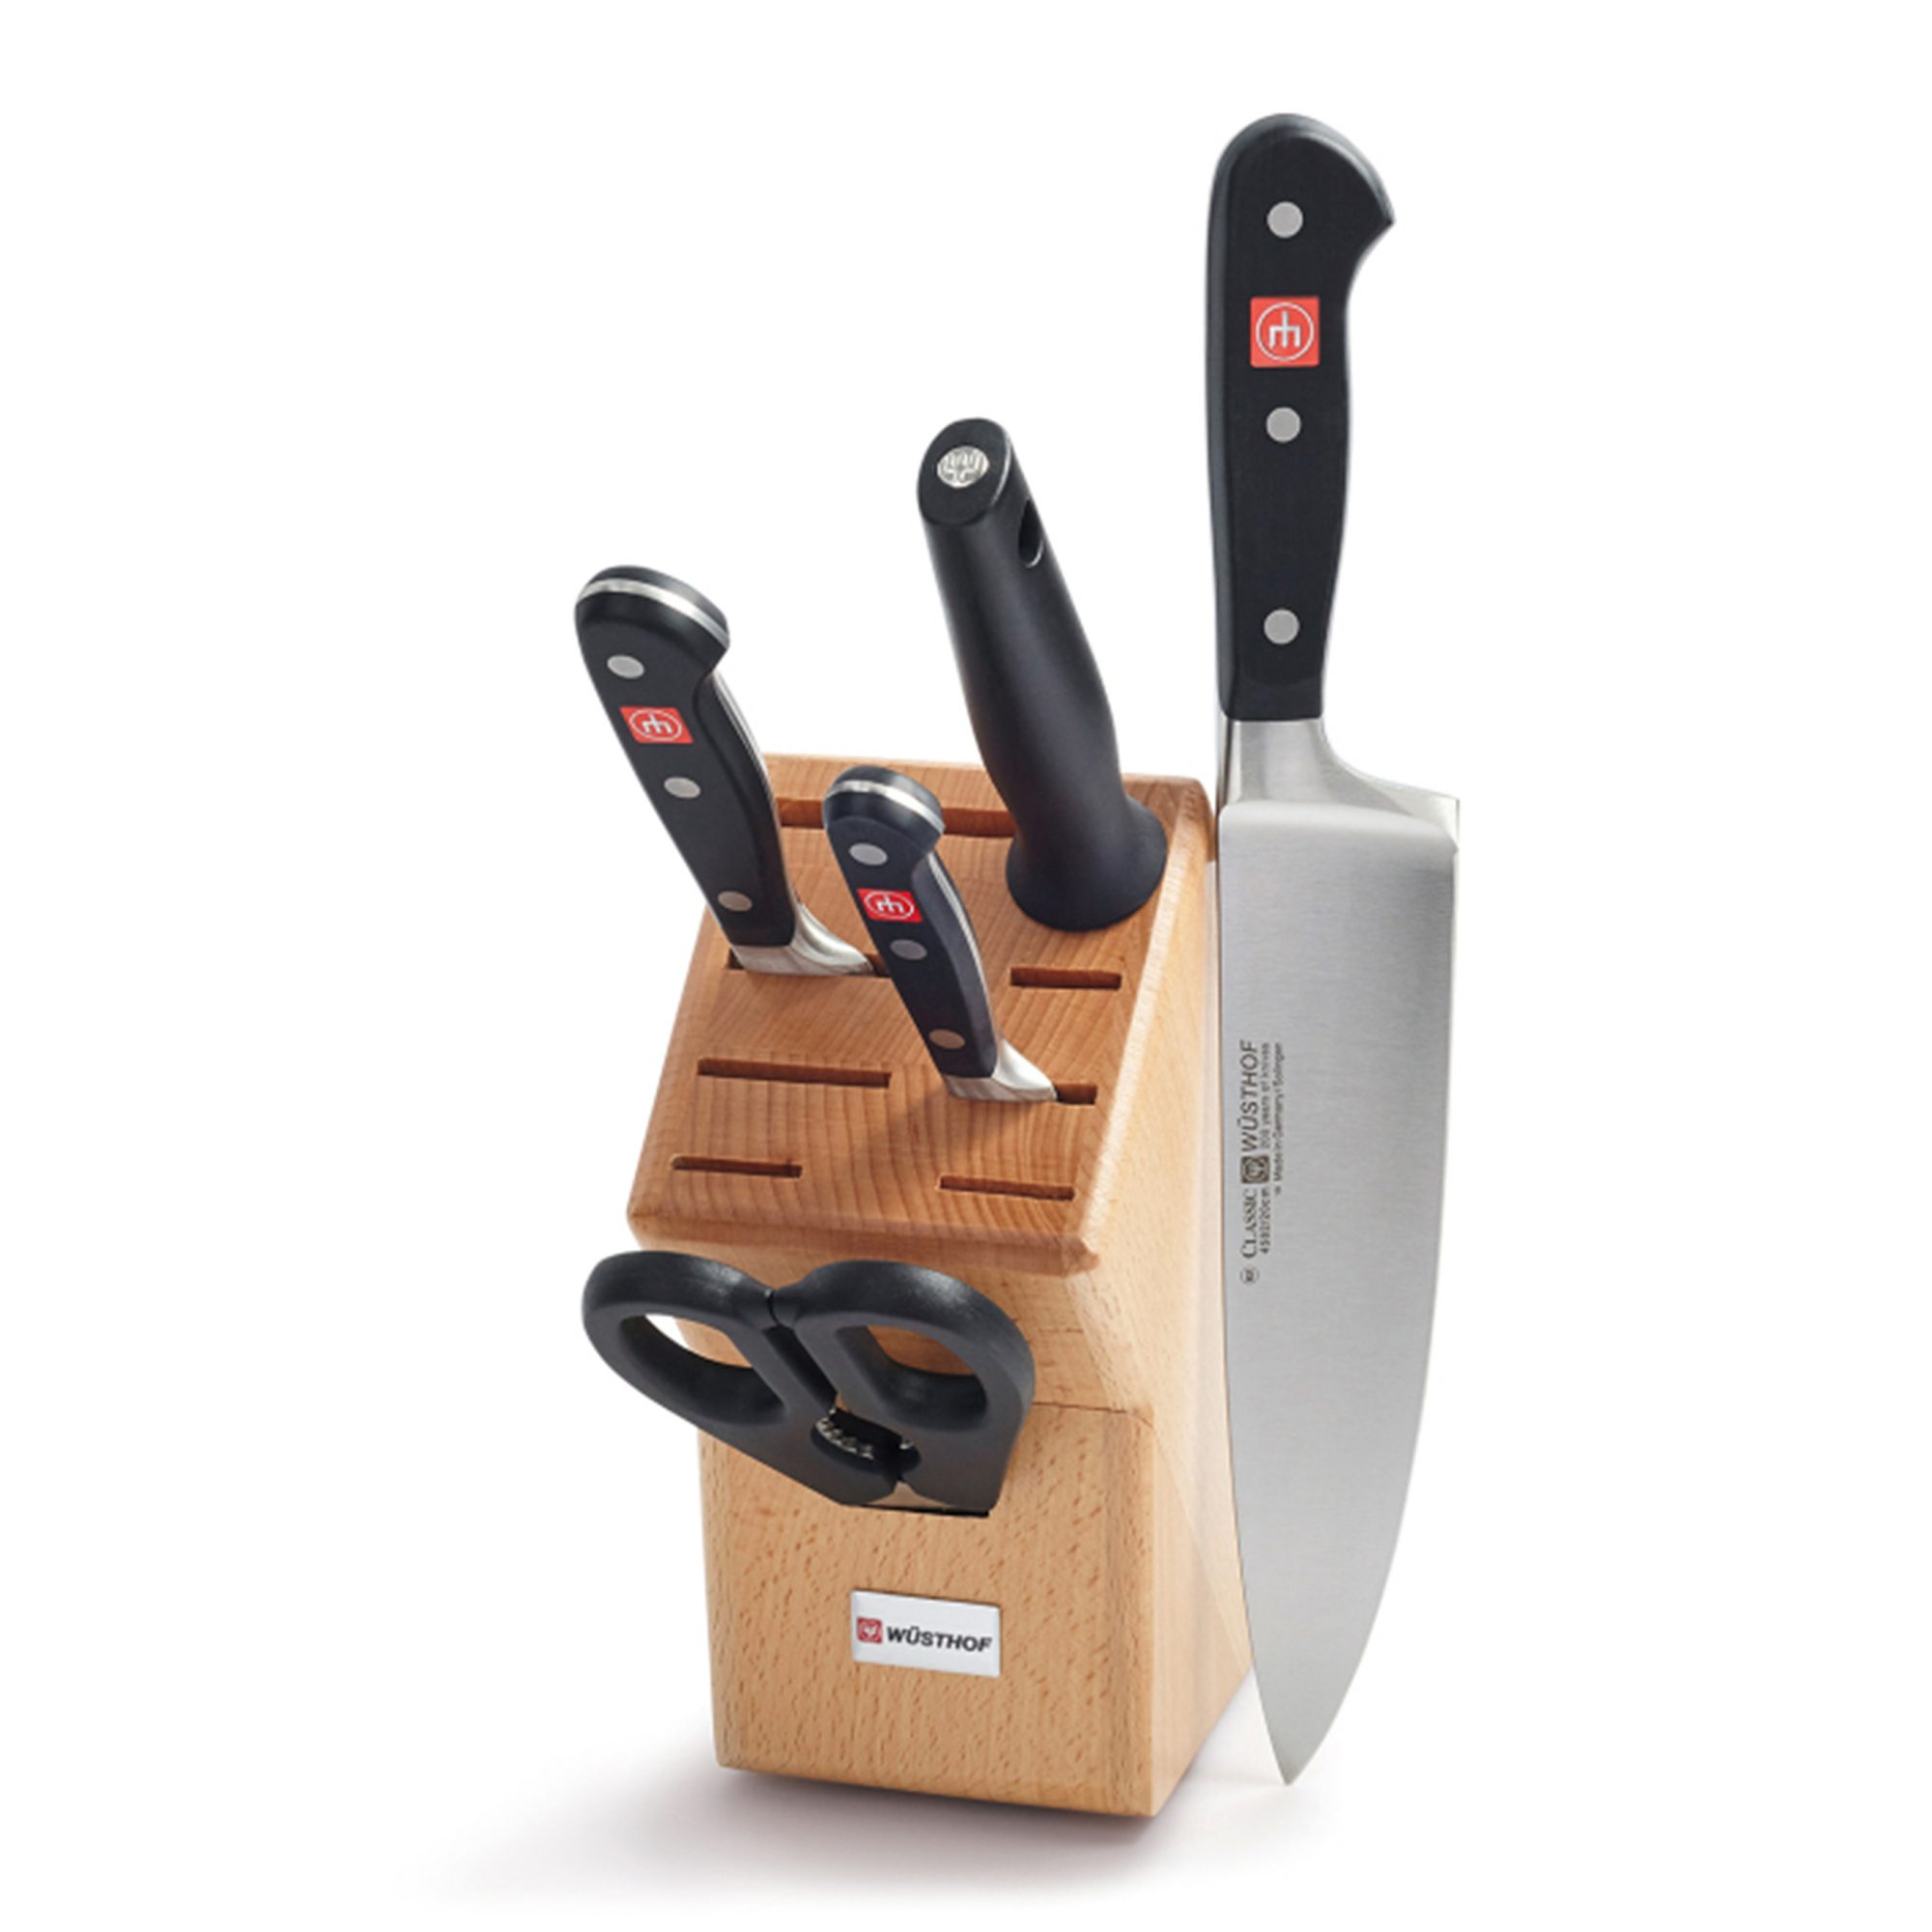 Wüsthof Classic 6-Piece Knife Block Set at Sur La Table